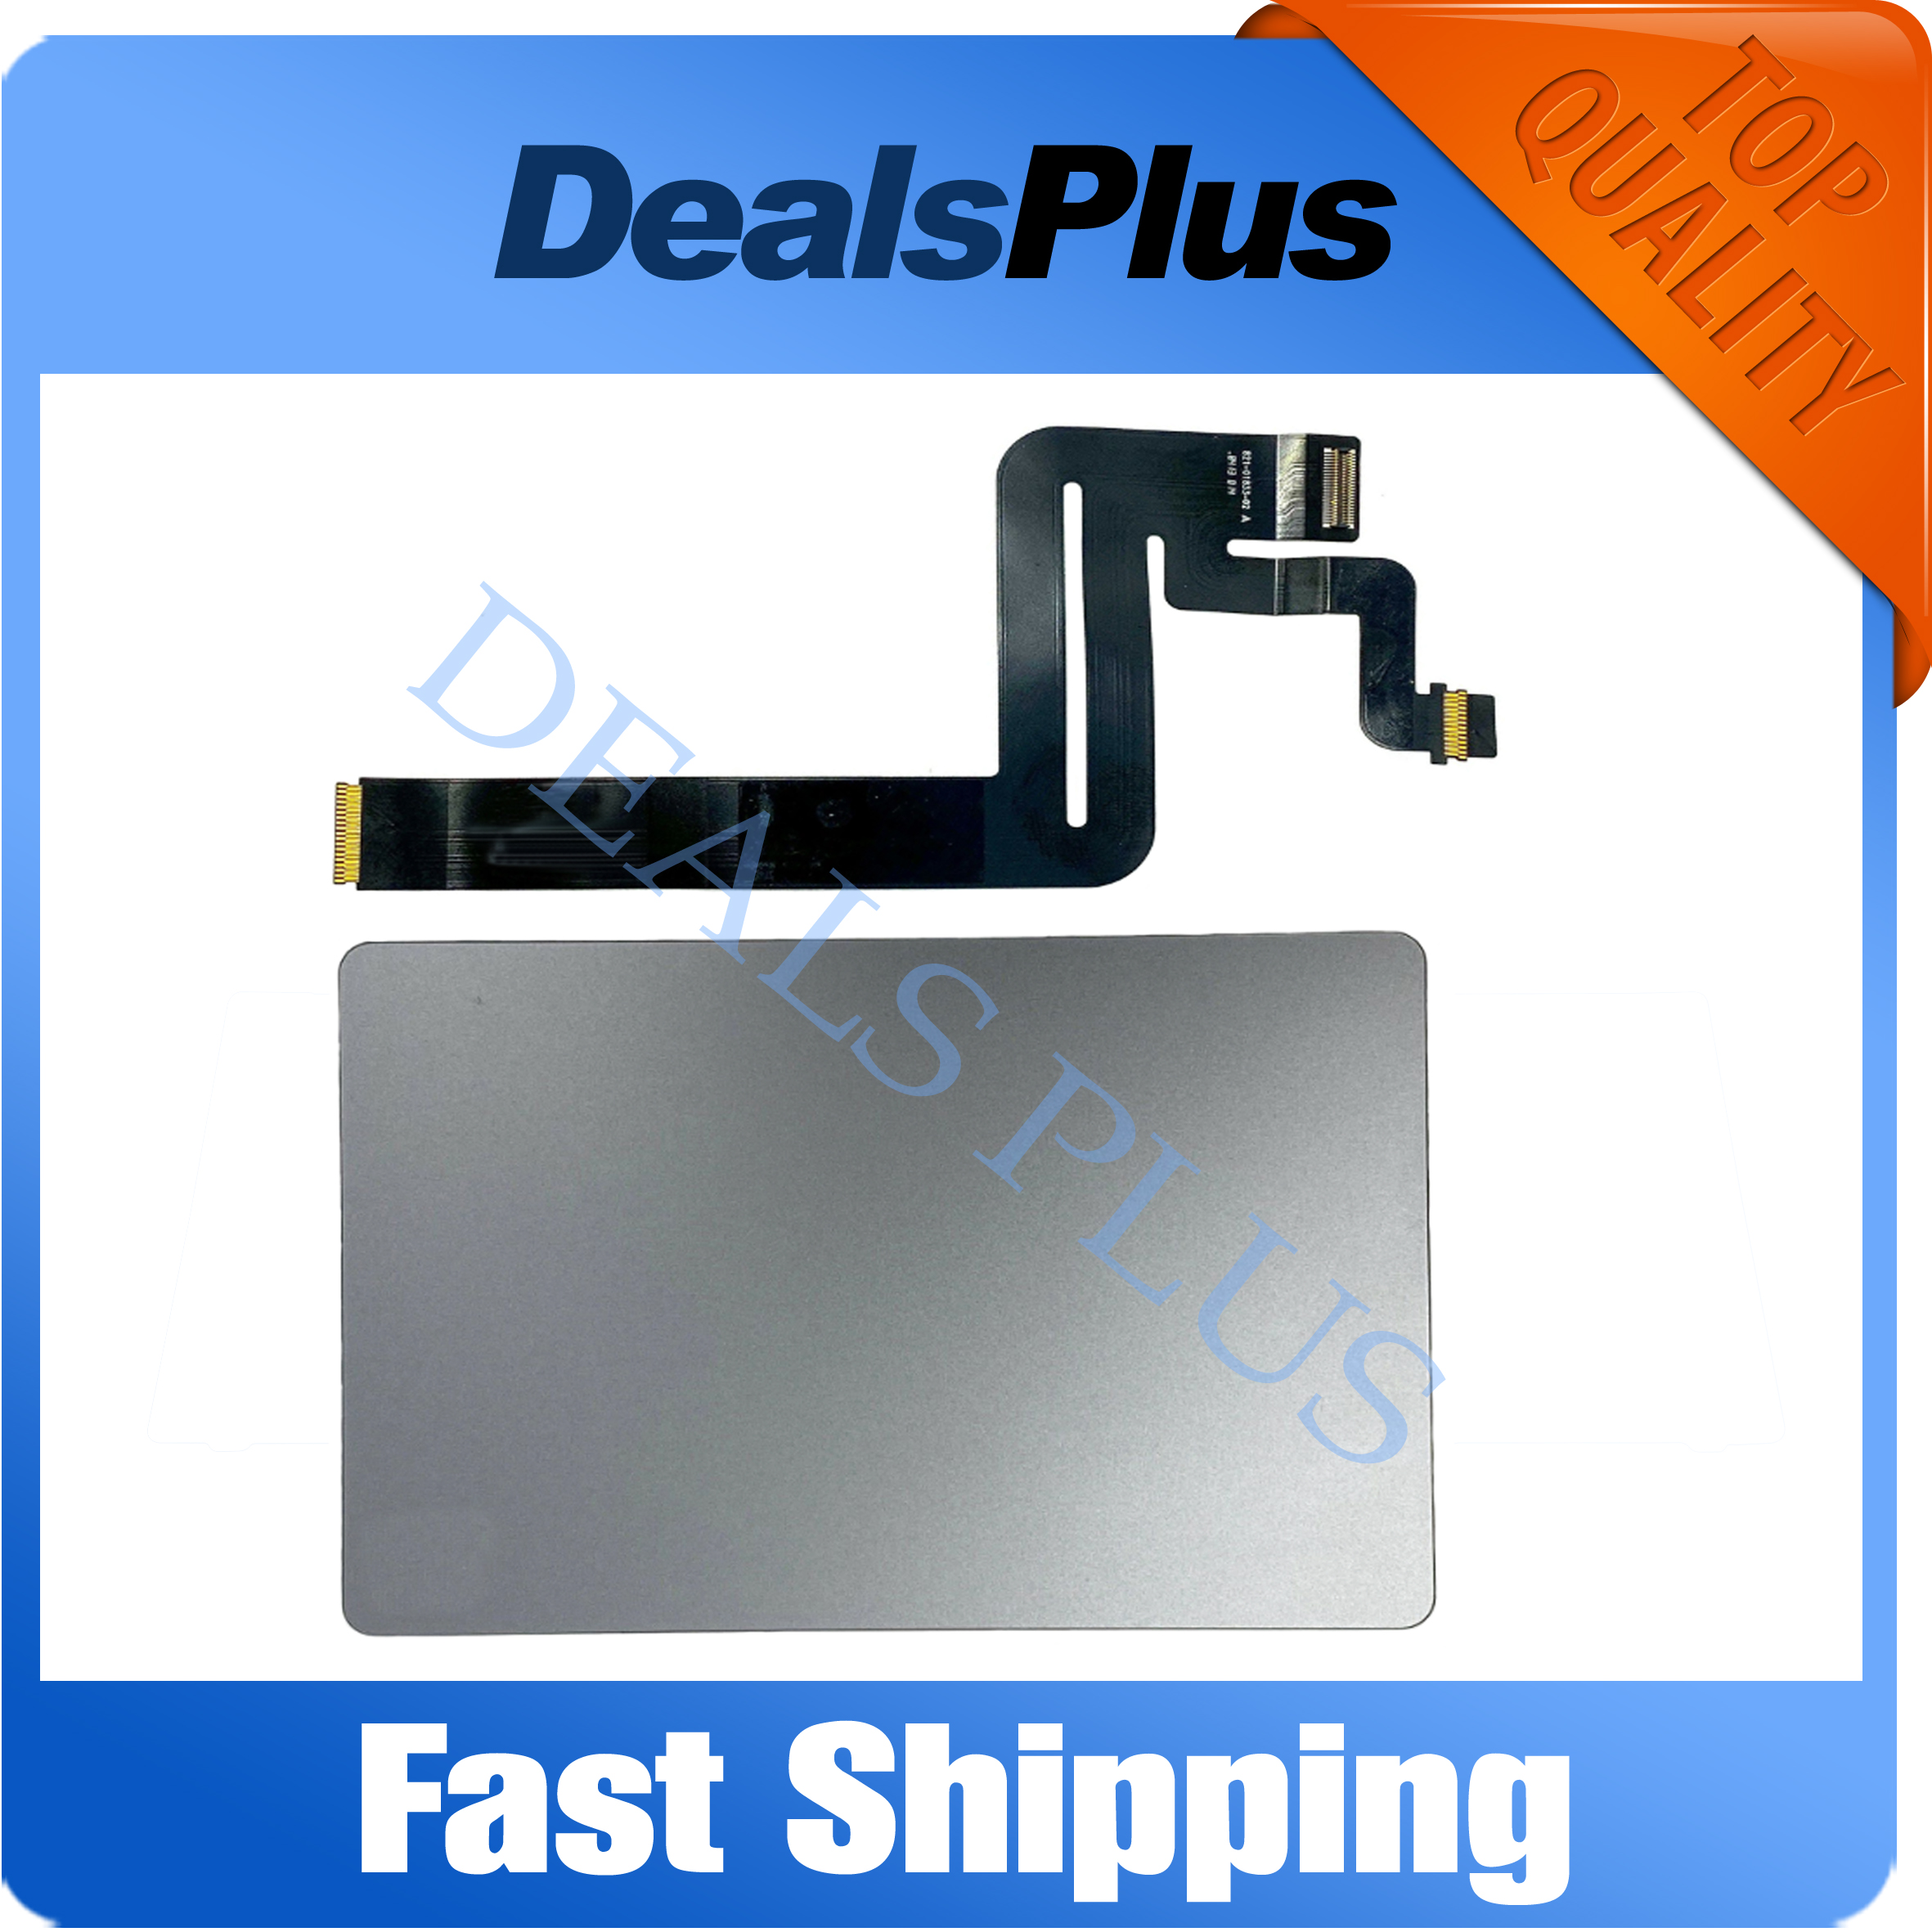 New <font><b>A1932</b></font> Touchpad <font><b>Trackpad</b></font> with Cable For Macbook Air Retina <font><b>A1932</b></font> 2018 Year Silver Gray Gold image